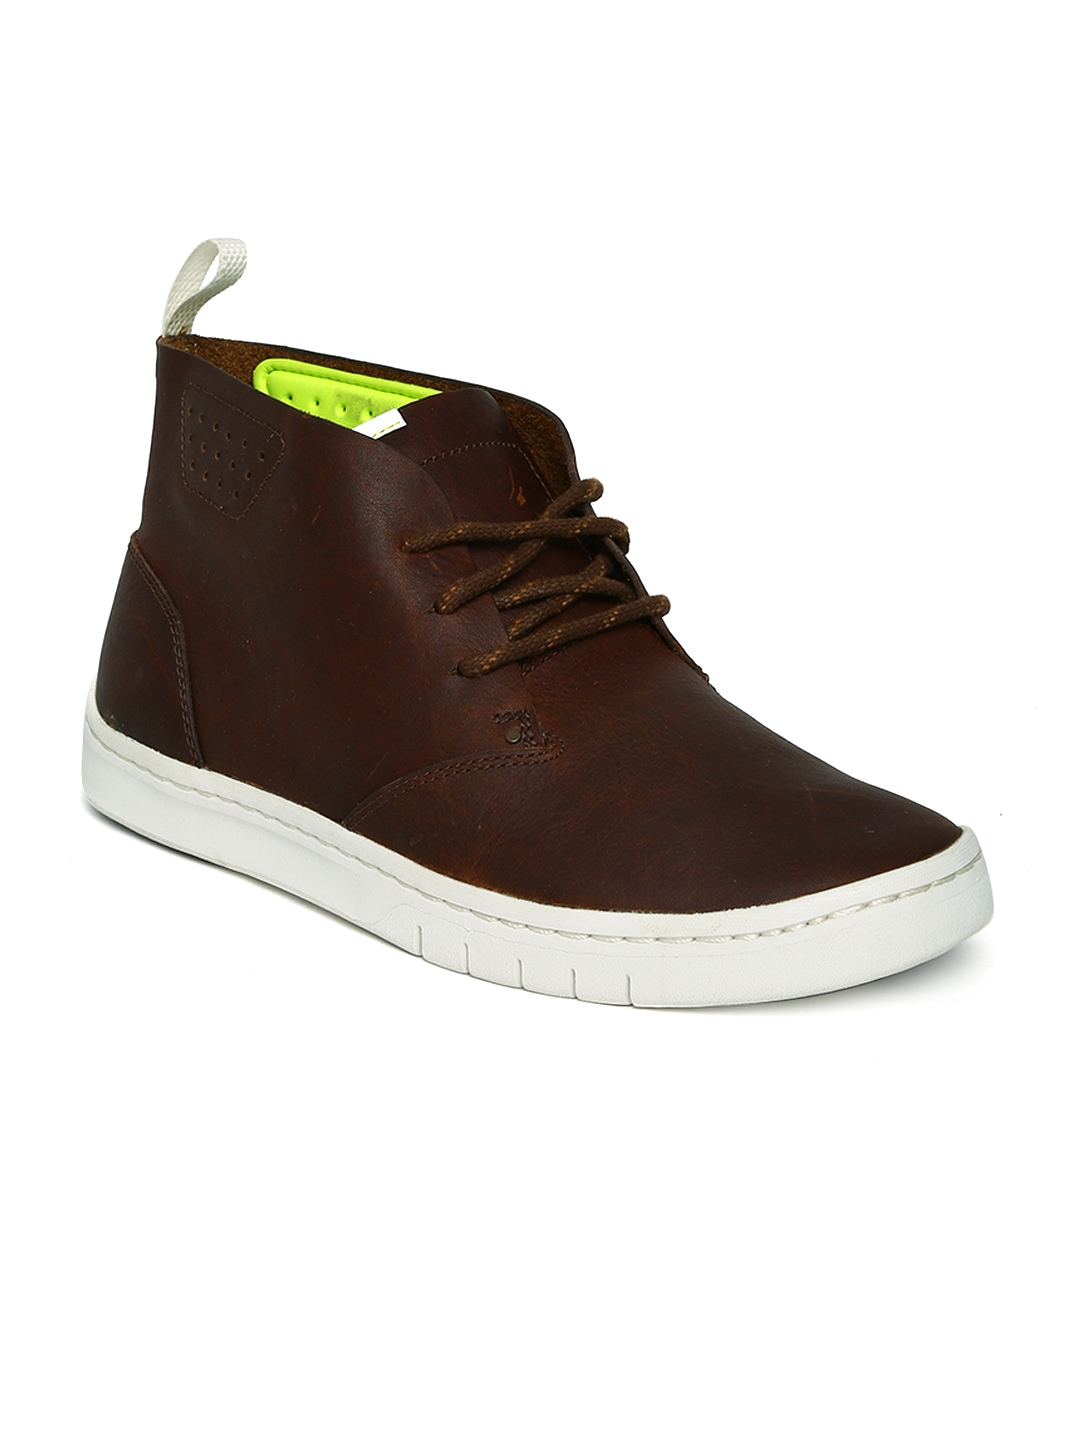 myntra clarks brown leather casual shoes 604654 buy